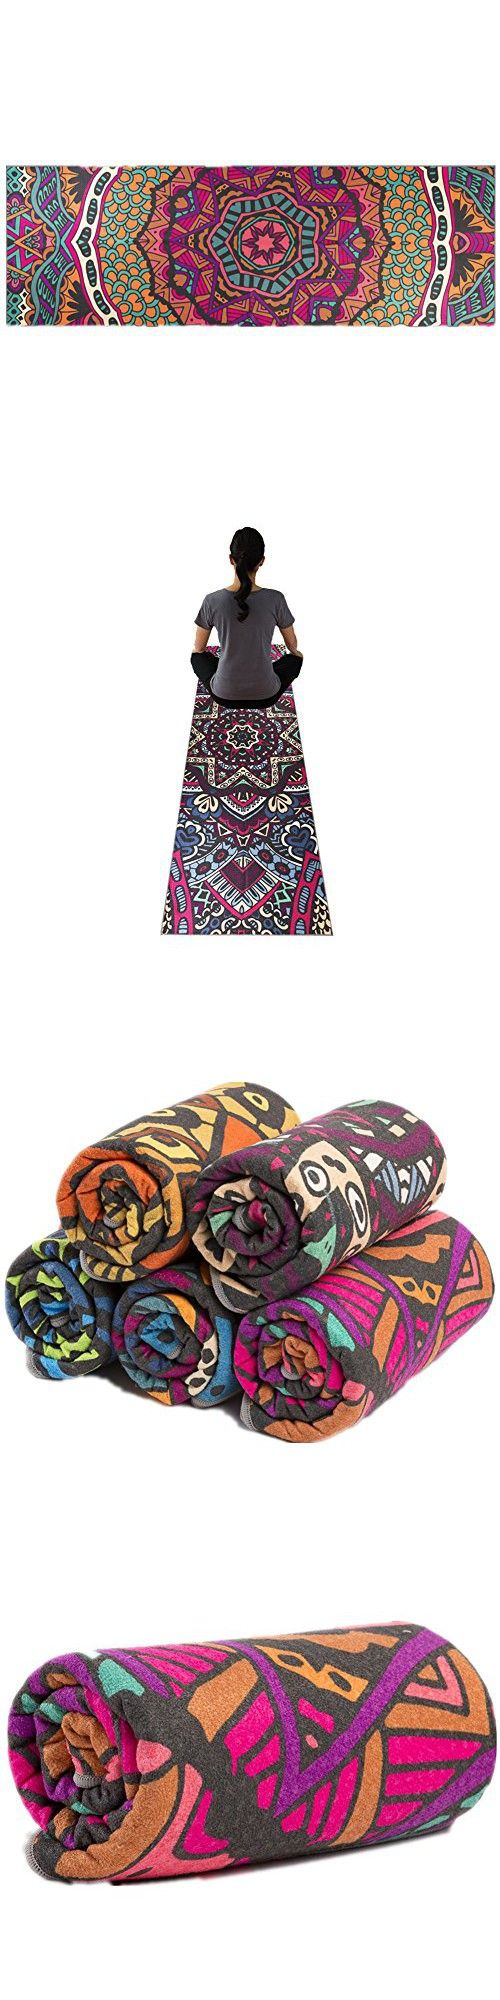 Yoga towel floral print skidless printed eco friendly lightweight insanely absorbent non